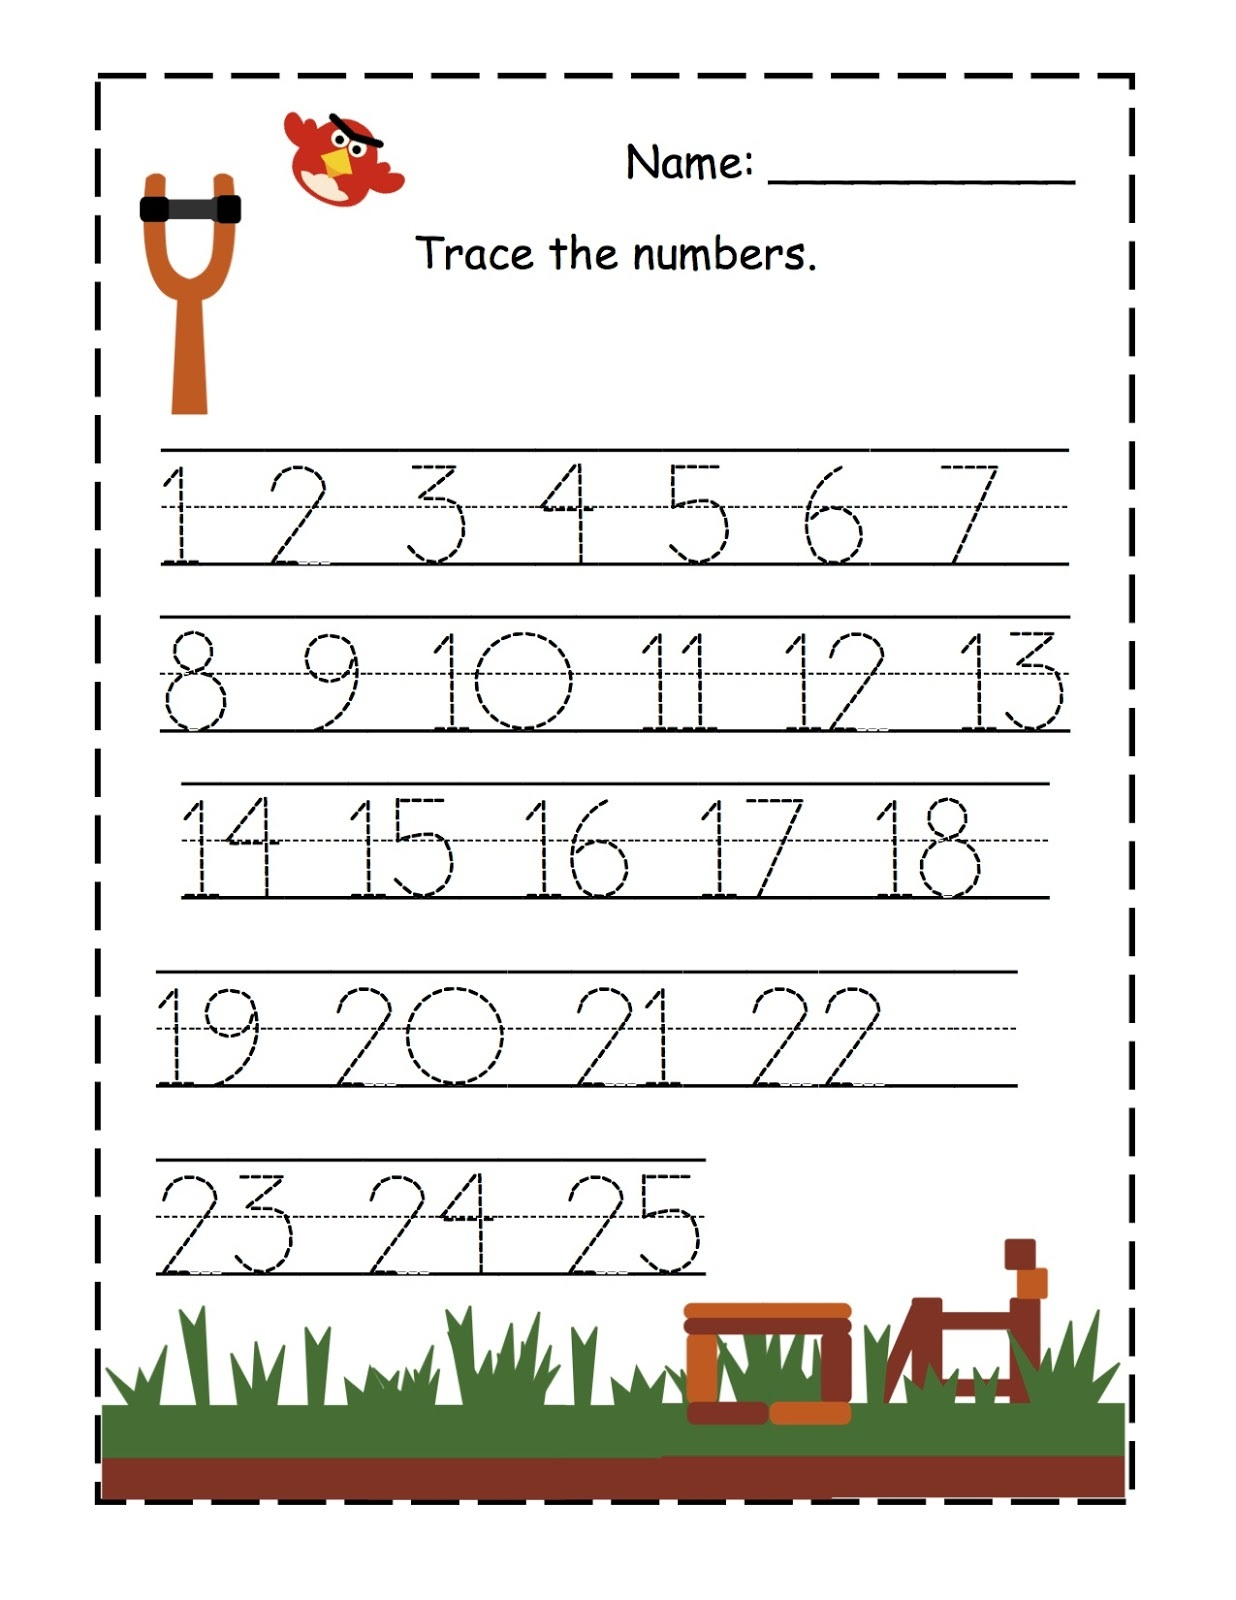 Trace The Numbers For The First Level